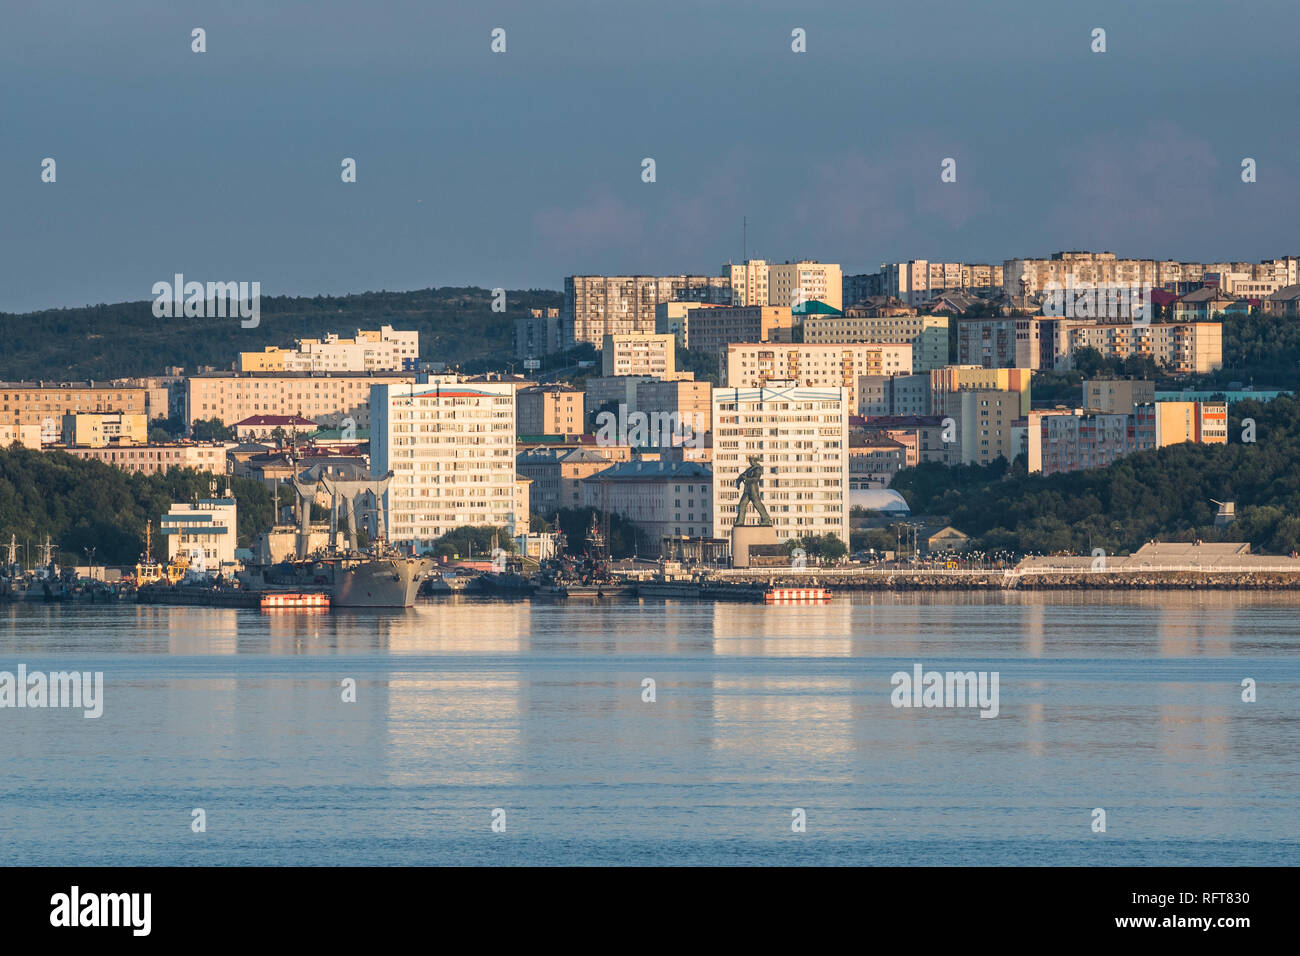 View over Murmansk at sunset, Russia, Europe - Stock Image